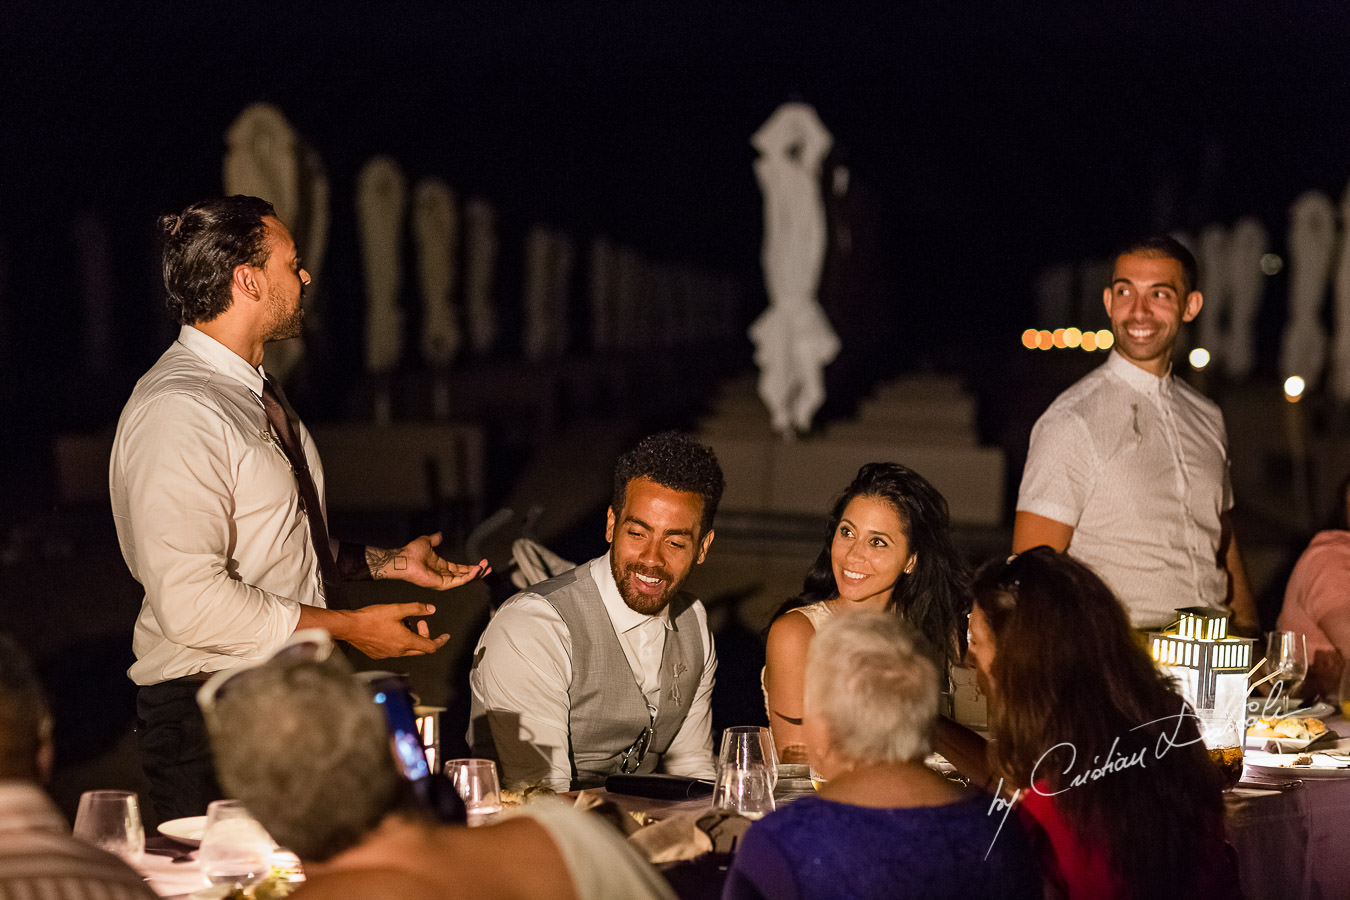 Guests chatting at the beautiful Anassa Hotel photographed by Cyprus Photographer Cristian Dascalu.